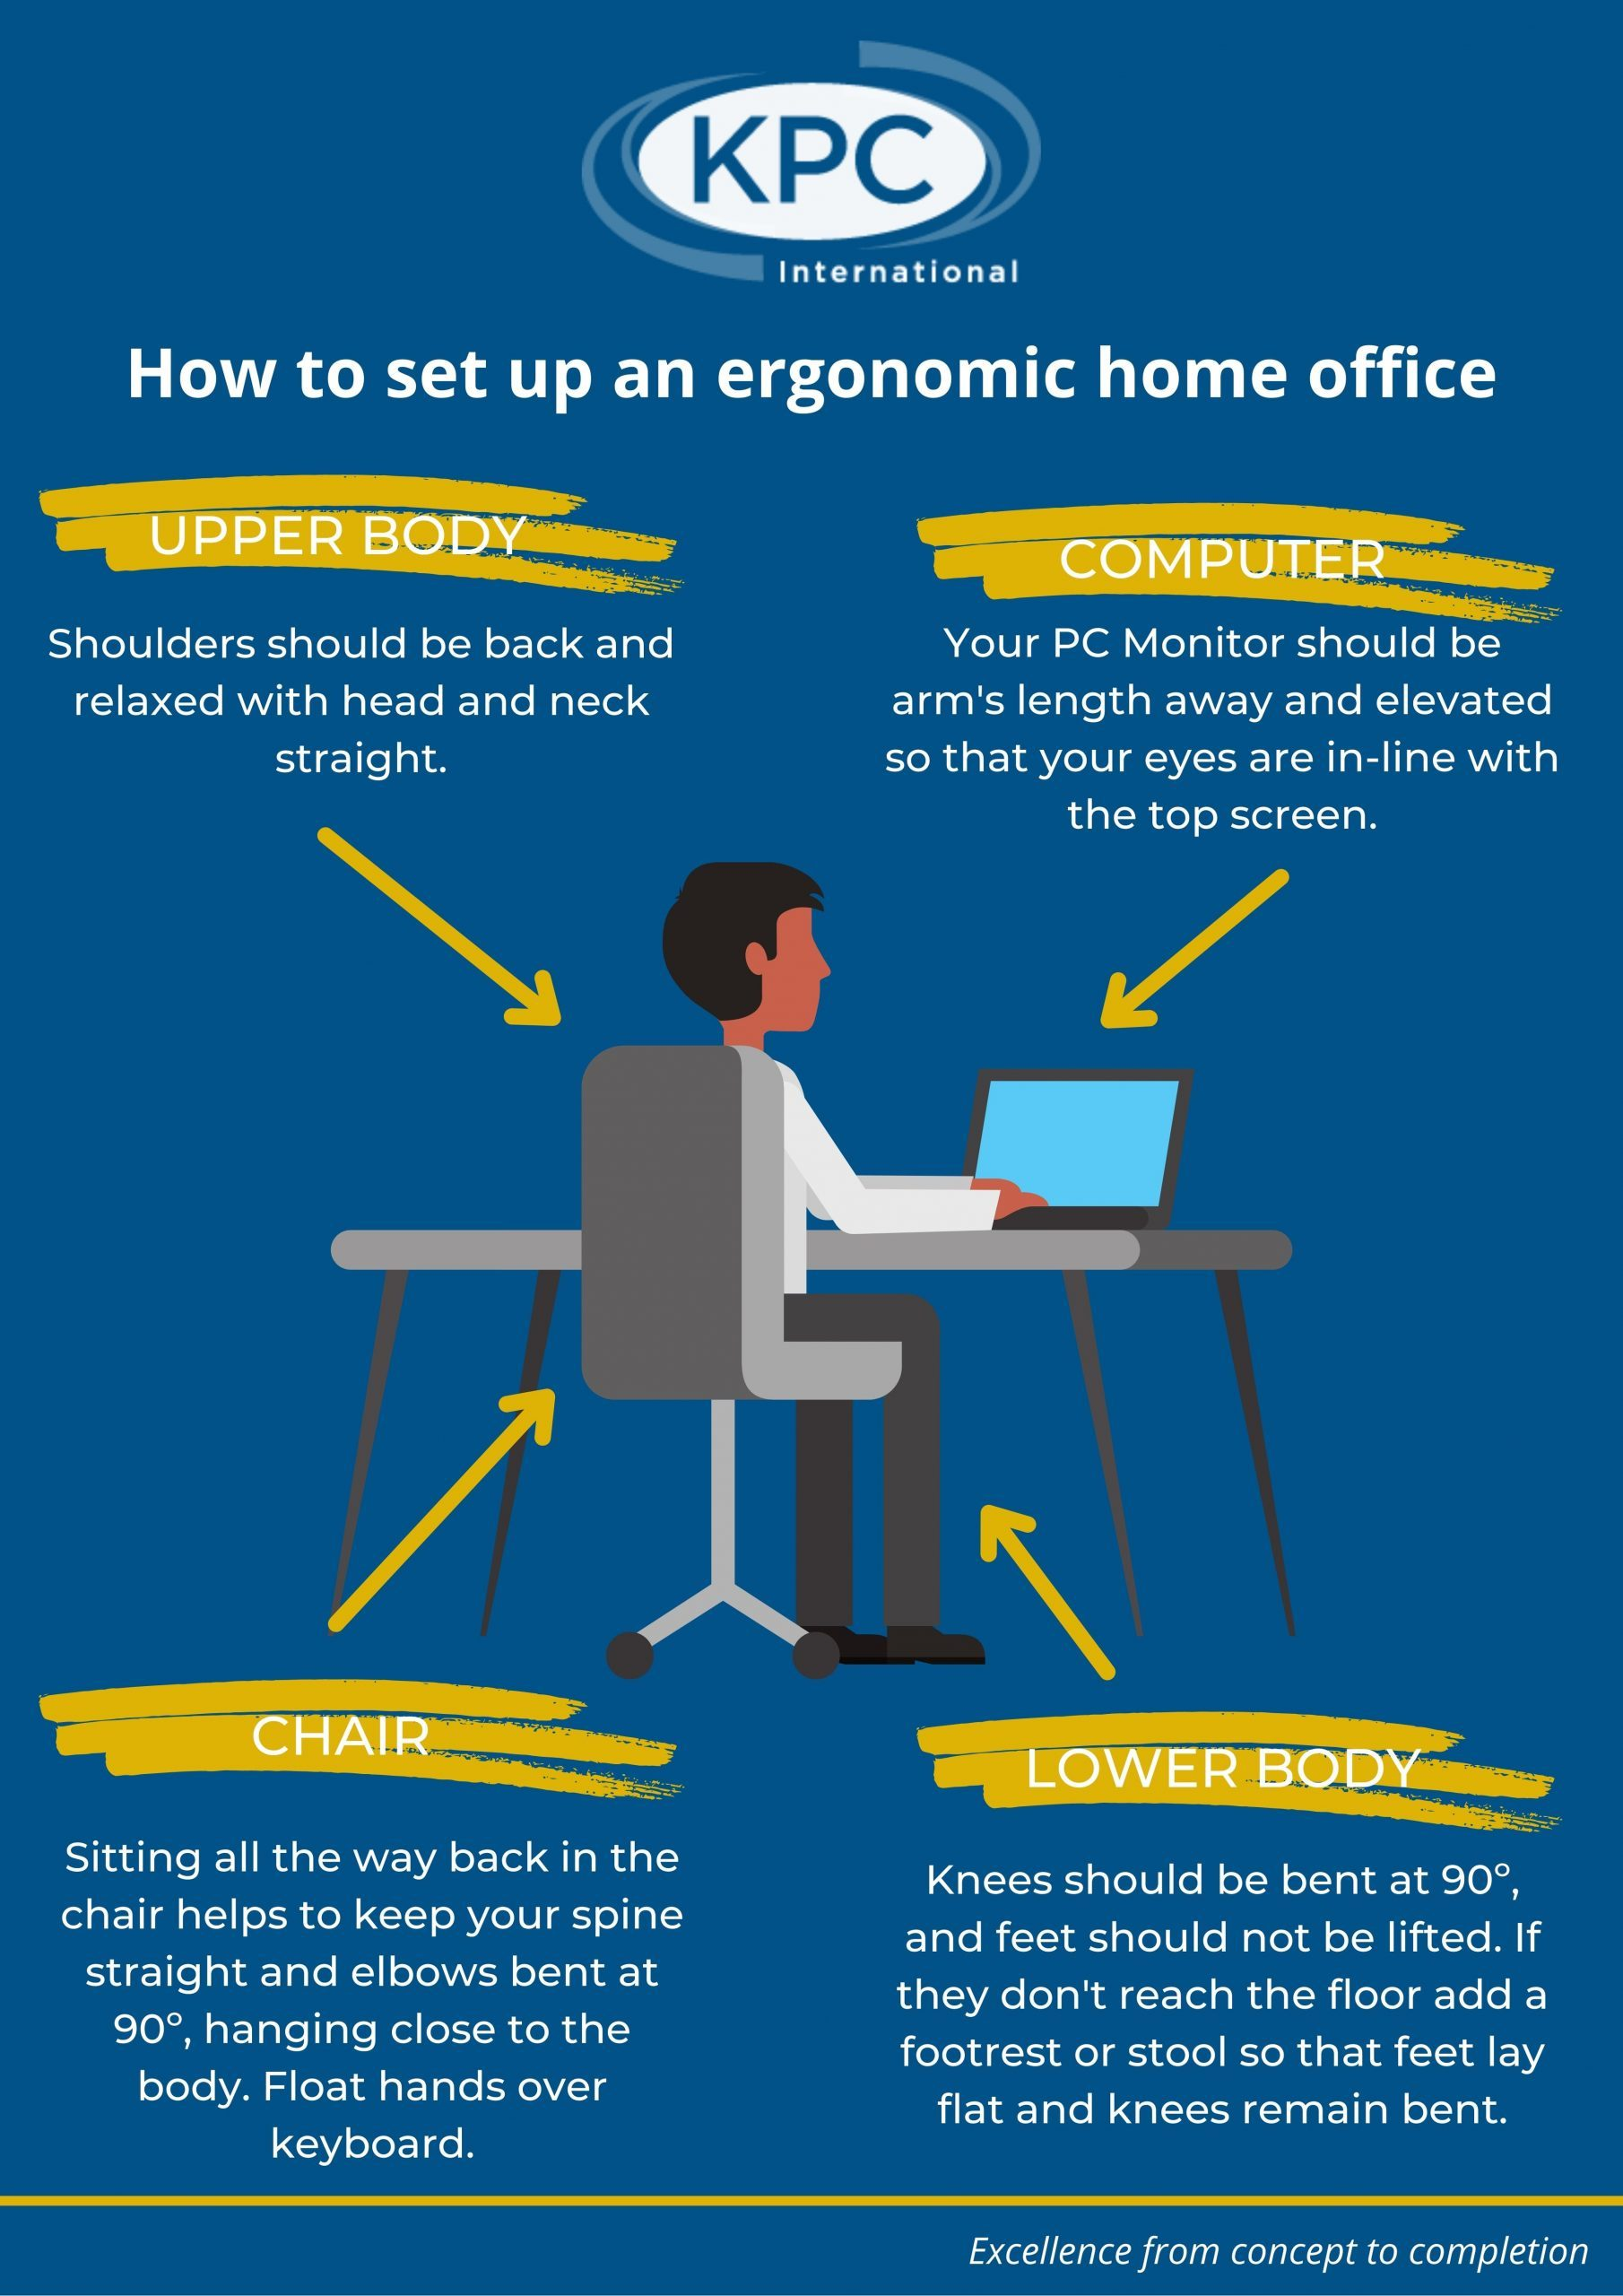 How to set up an ergonomic home office